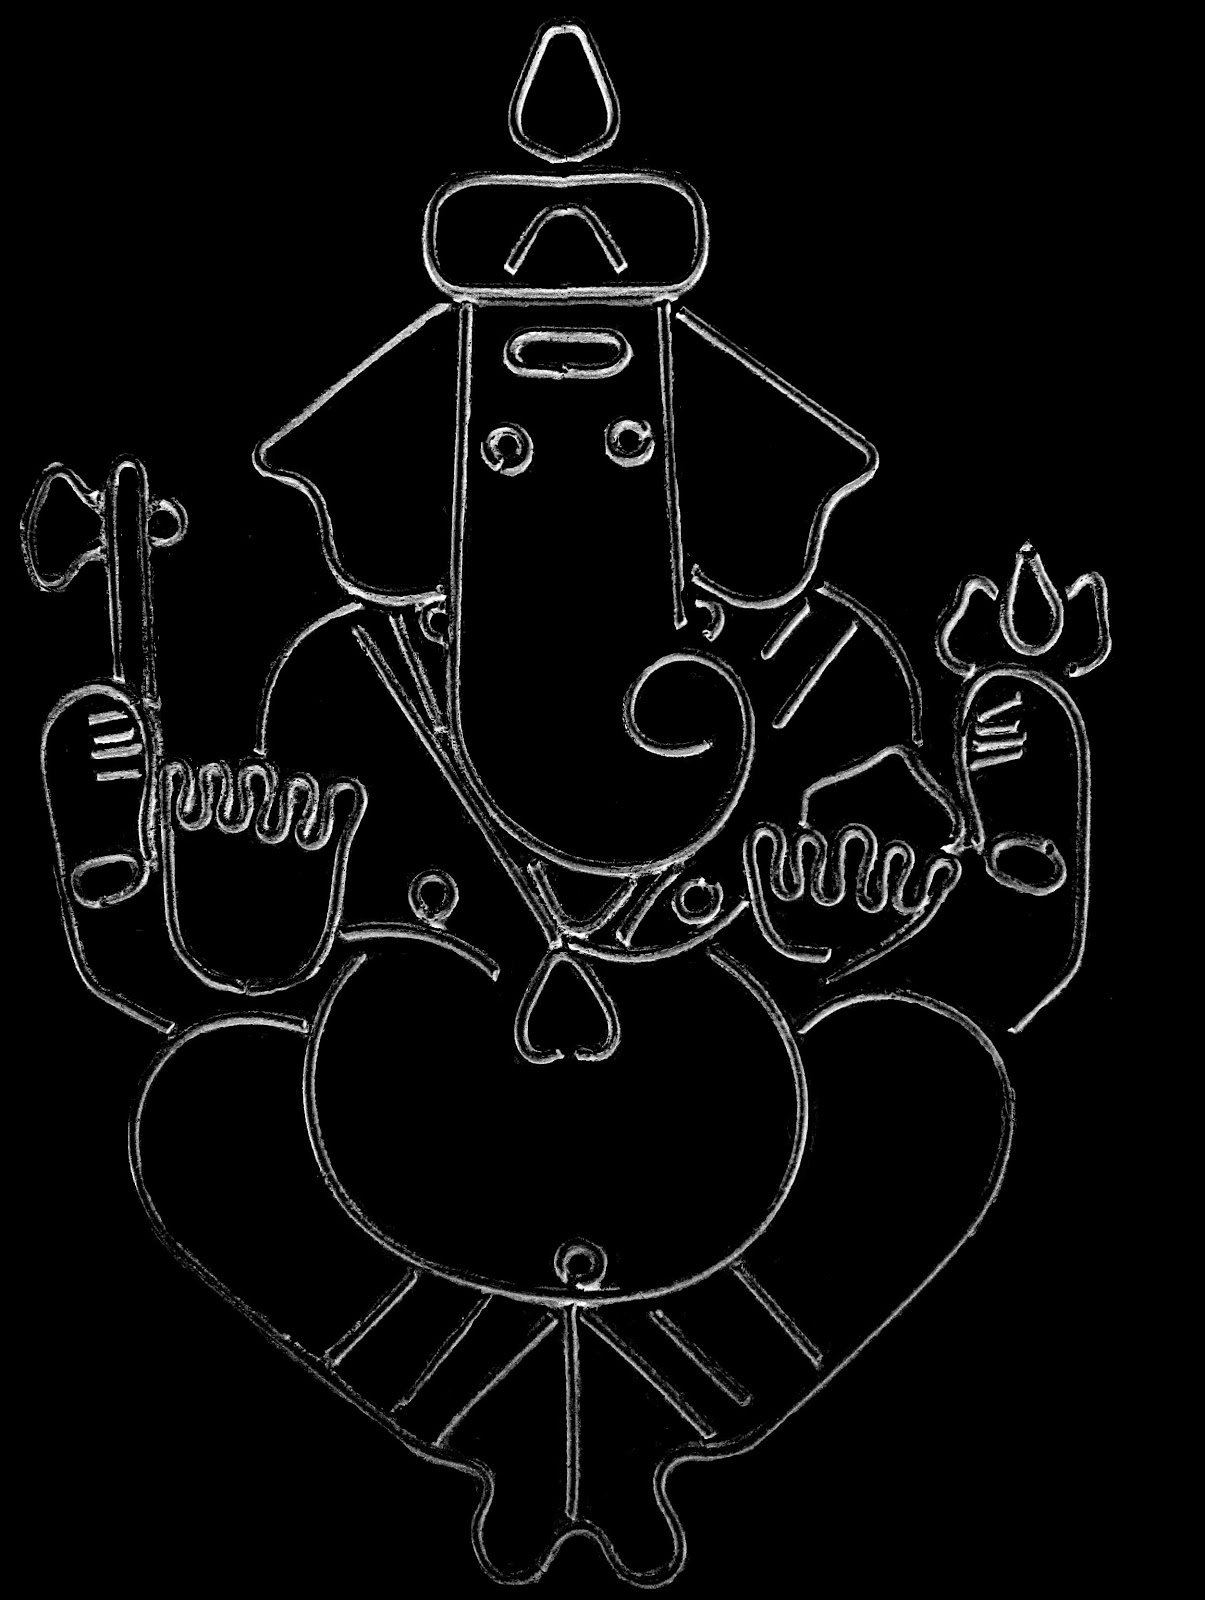 Stock Pictures: Ganpati or Ganesh sketches